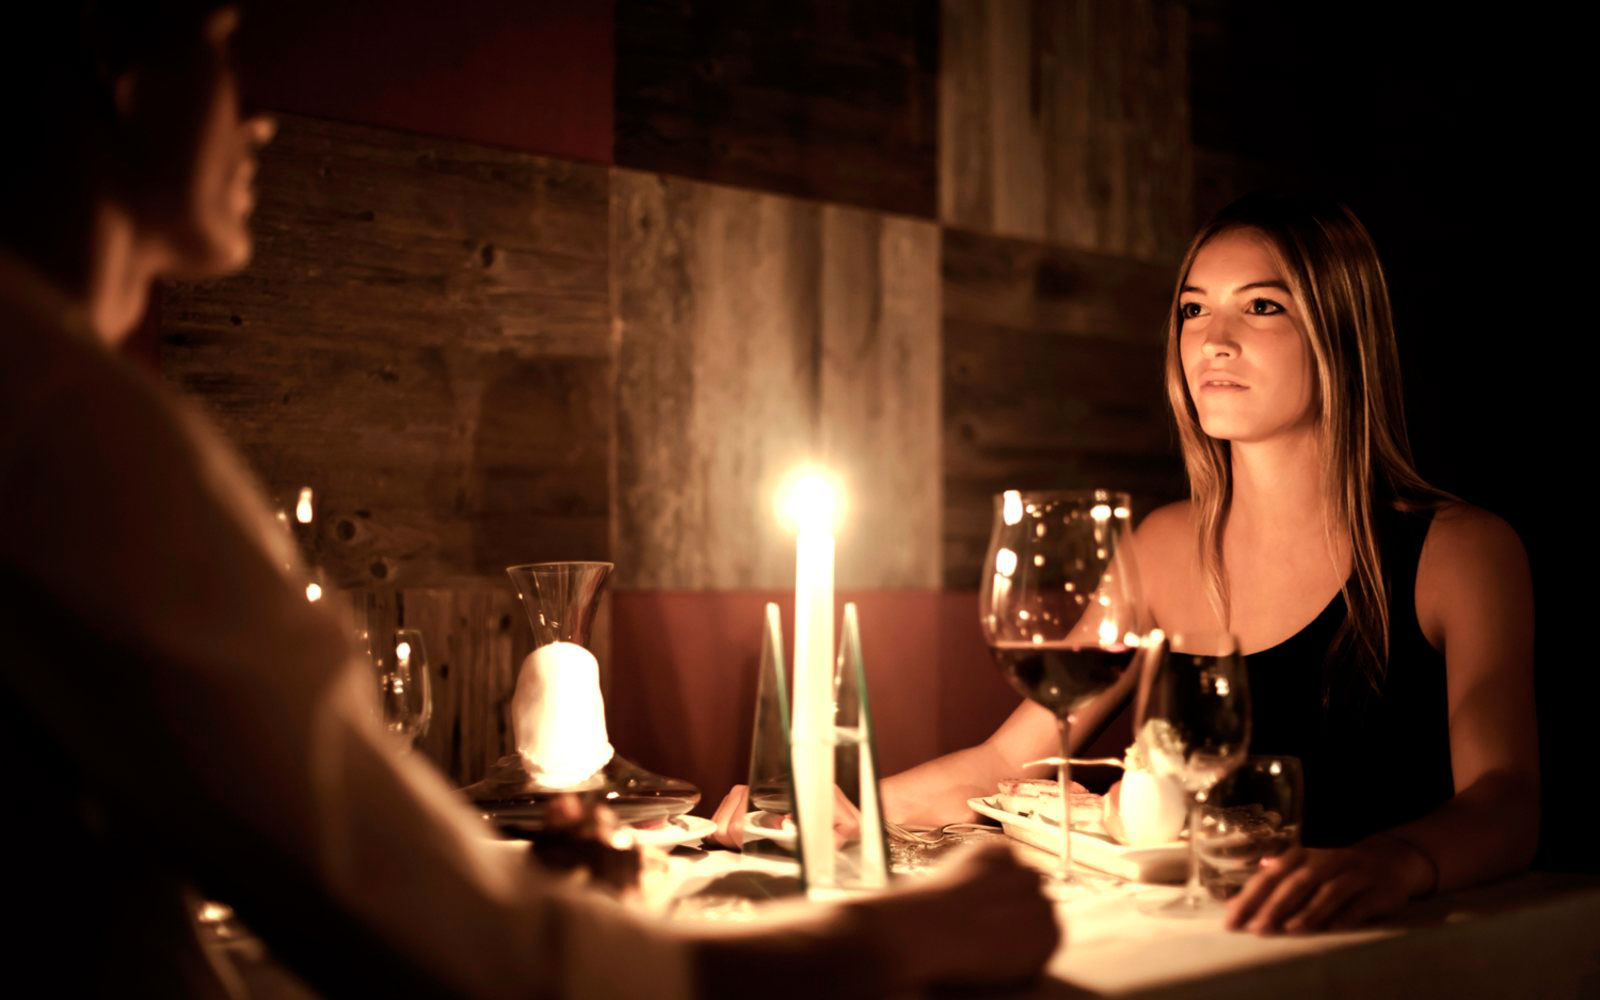 dating-facts-und-trends